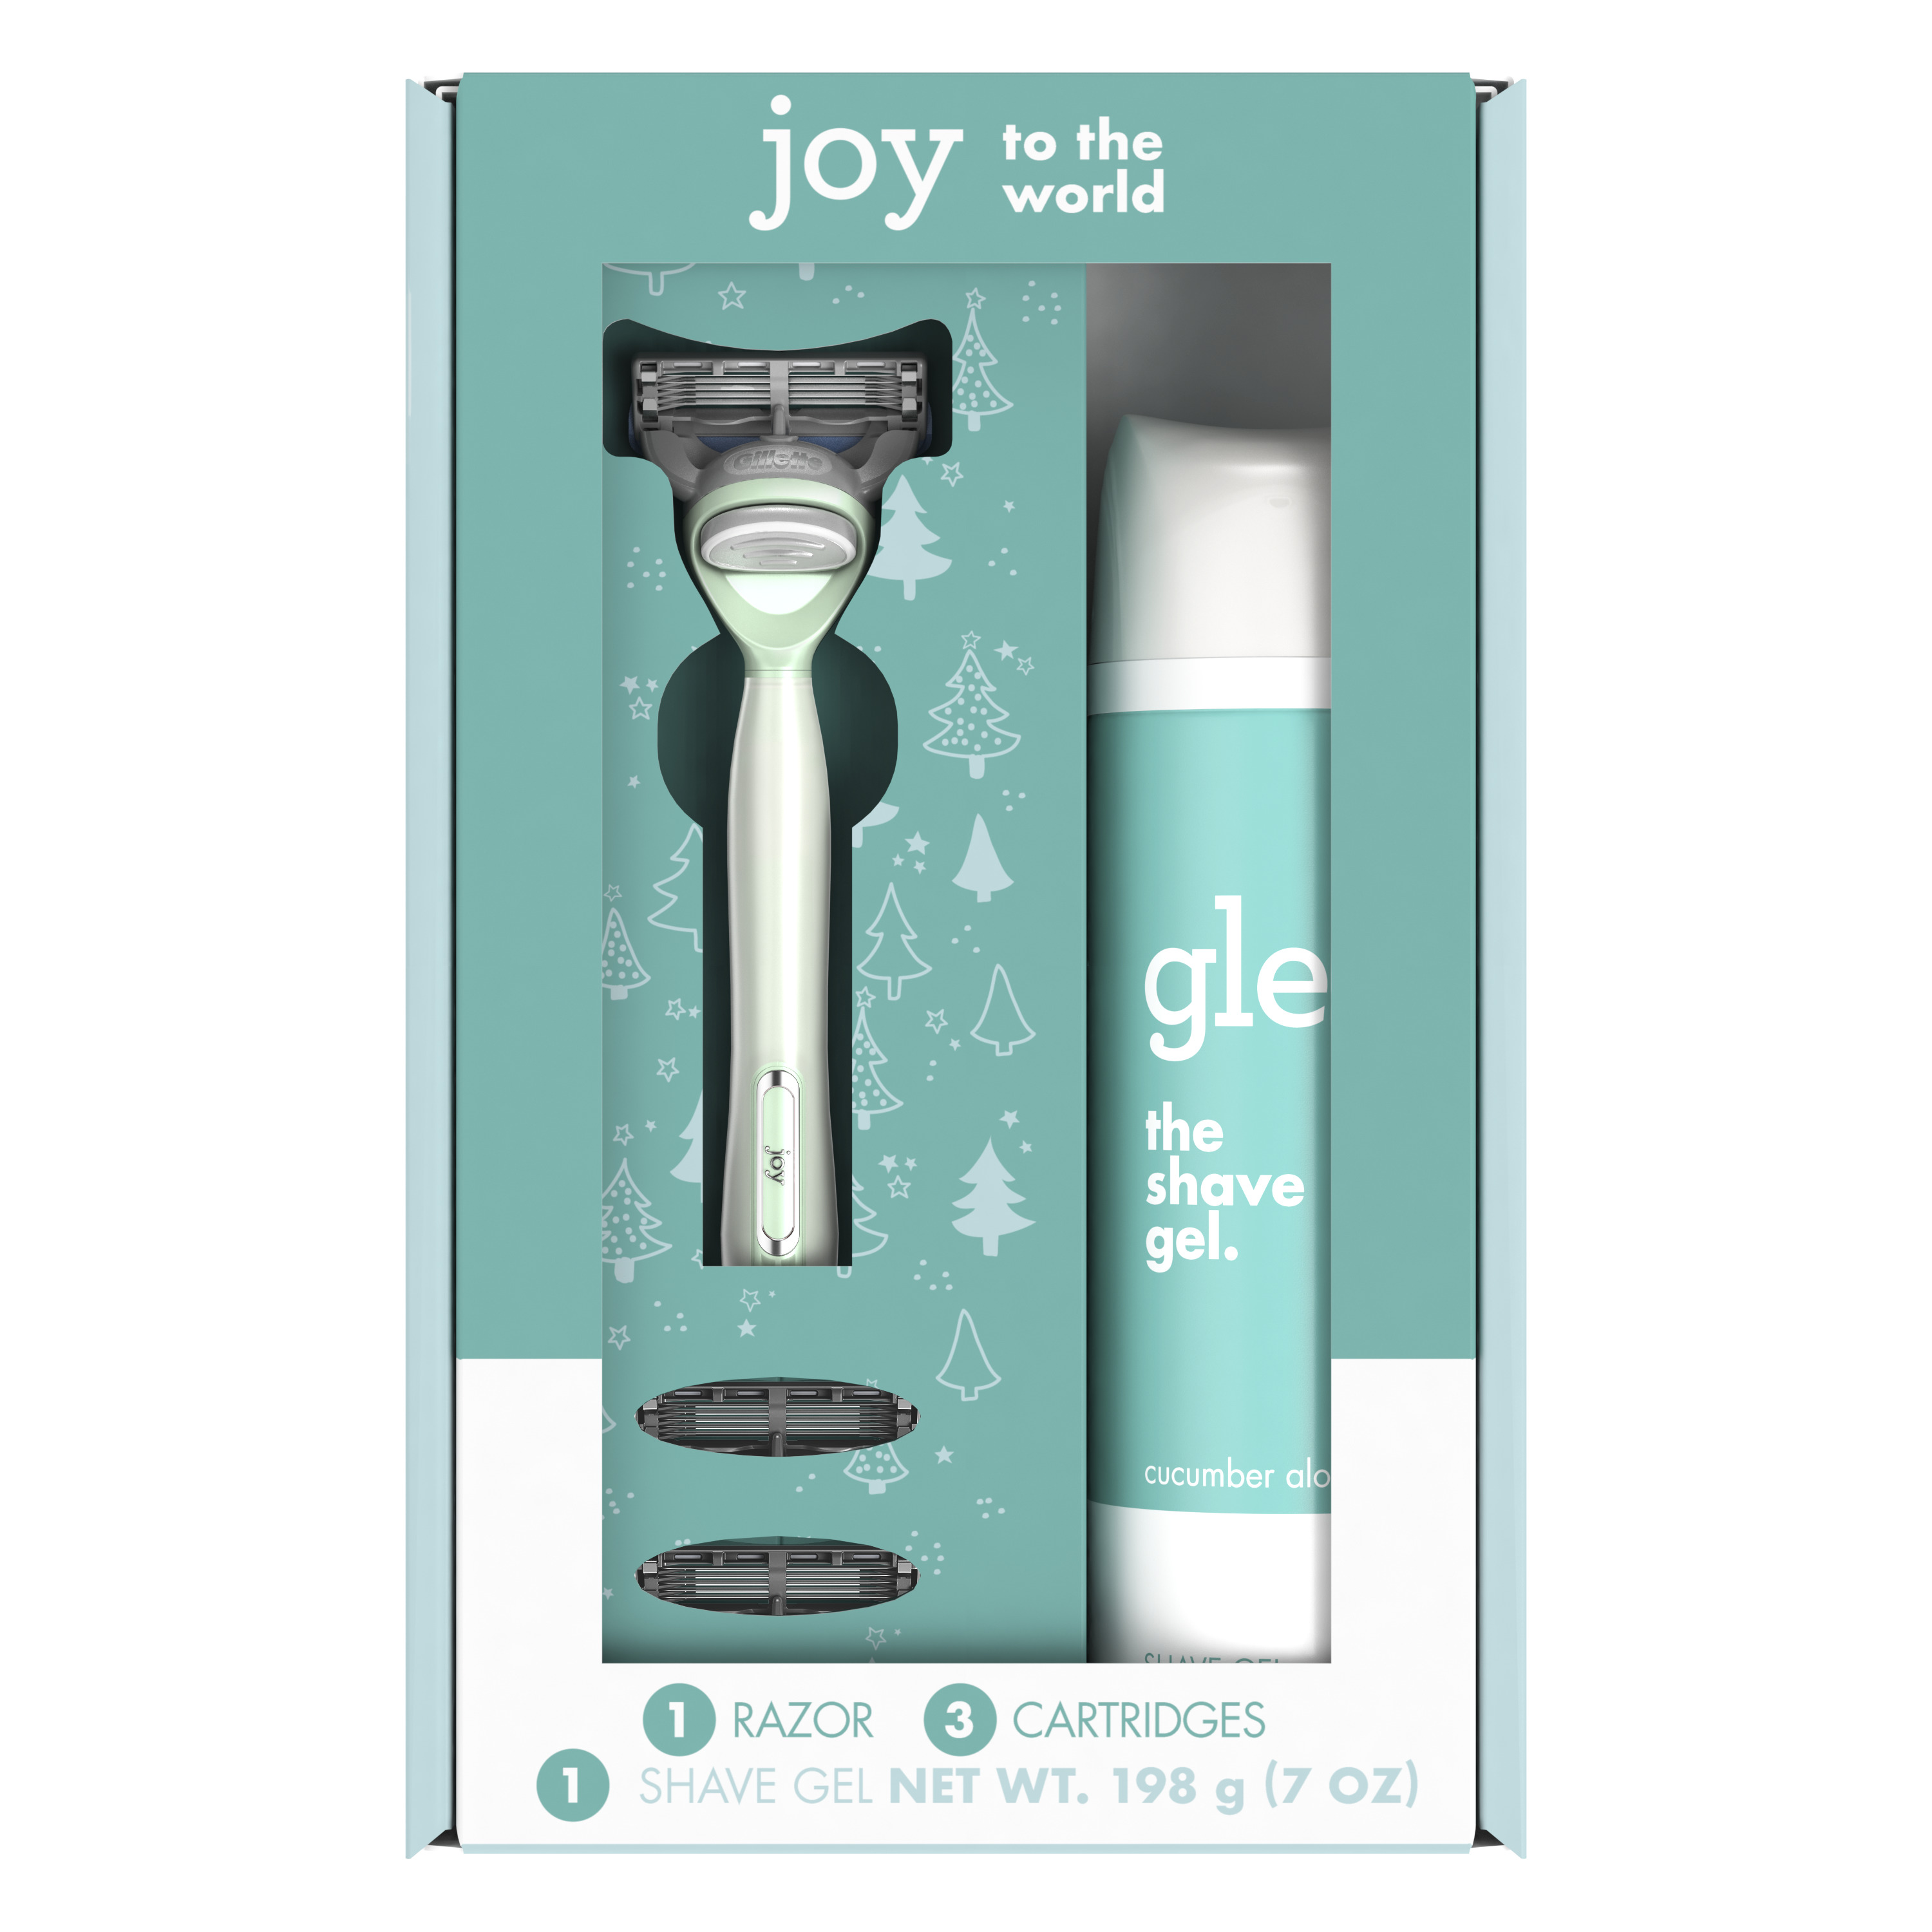 joy Teal Holiday Gift Set including 1 Handle, 3 Refills and a Shave Gel